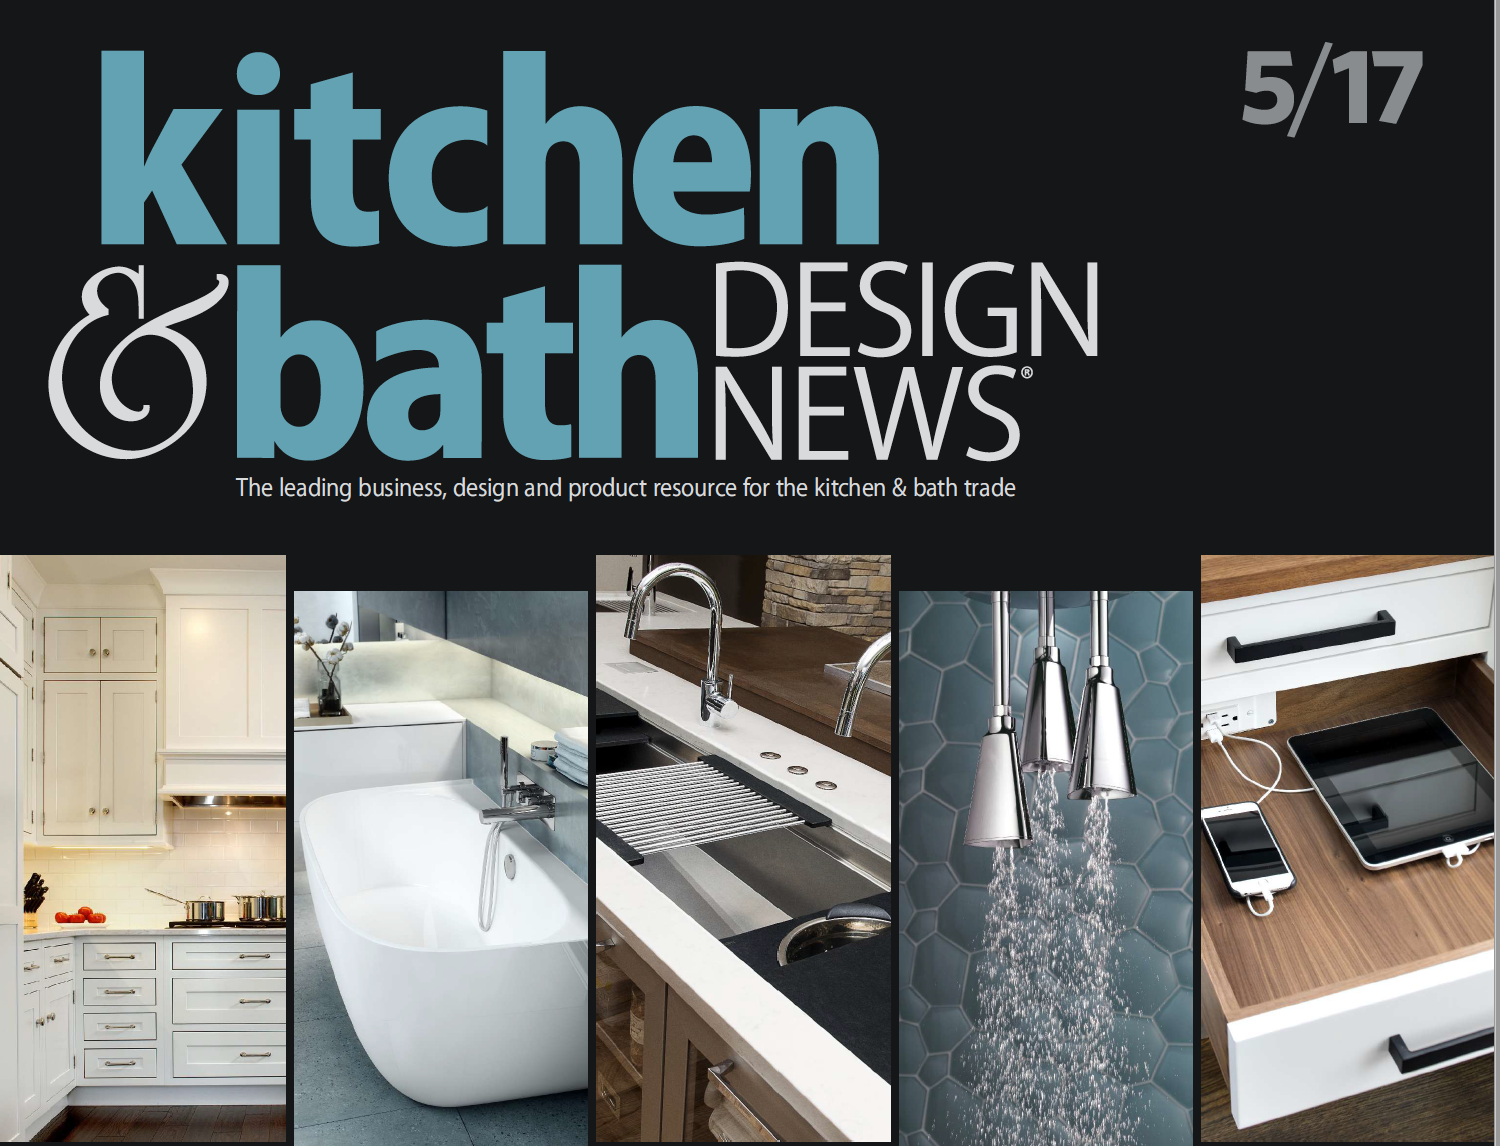 Kitchen & Bath Design News: Smart Conveniences  |  Dream Kitchen Builders